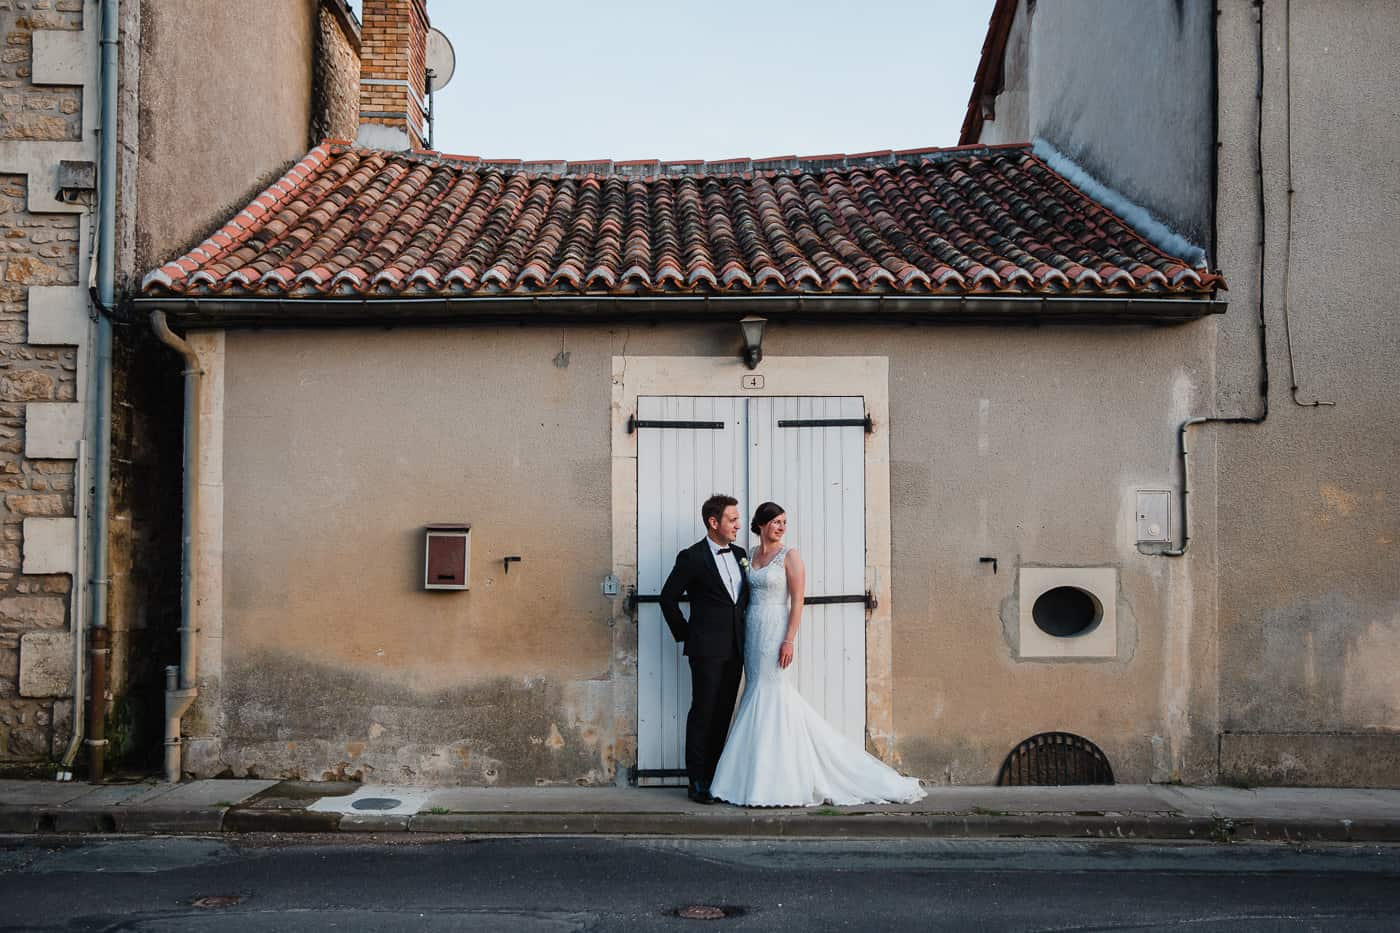 Chateau de la Couronne Wedding Photography - Couple Portraits